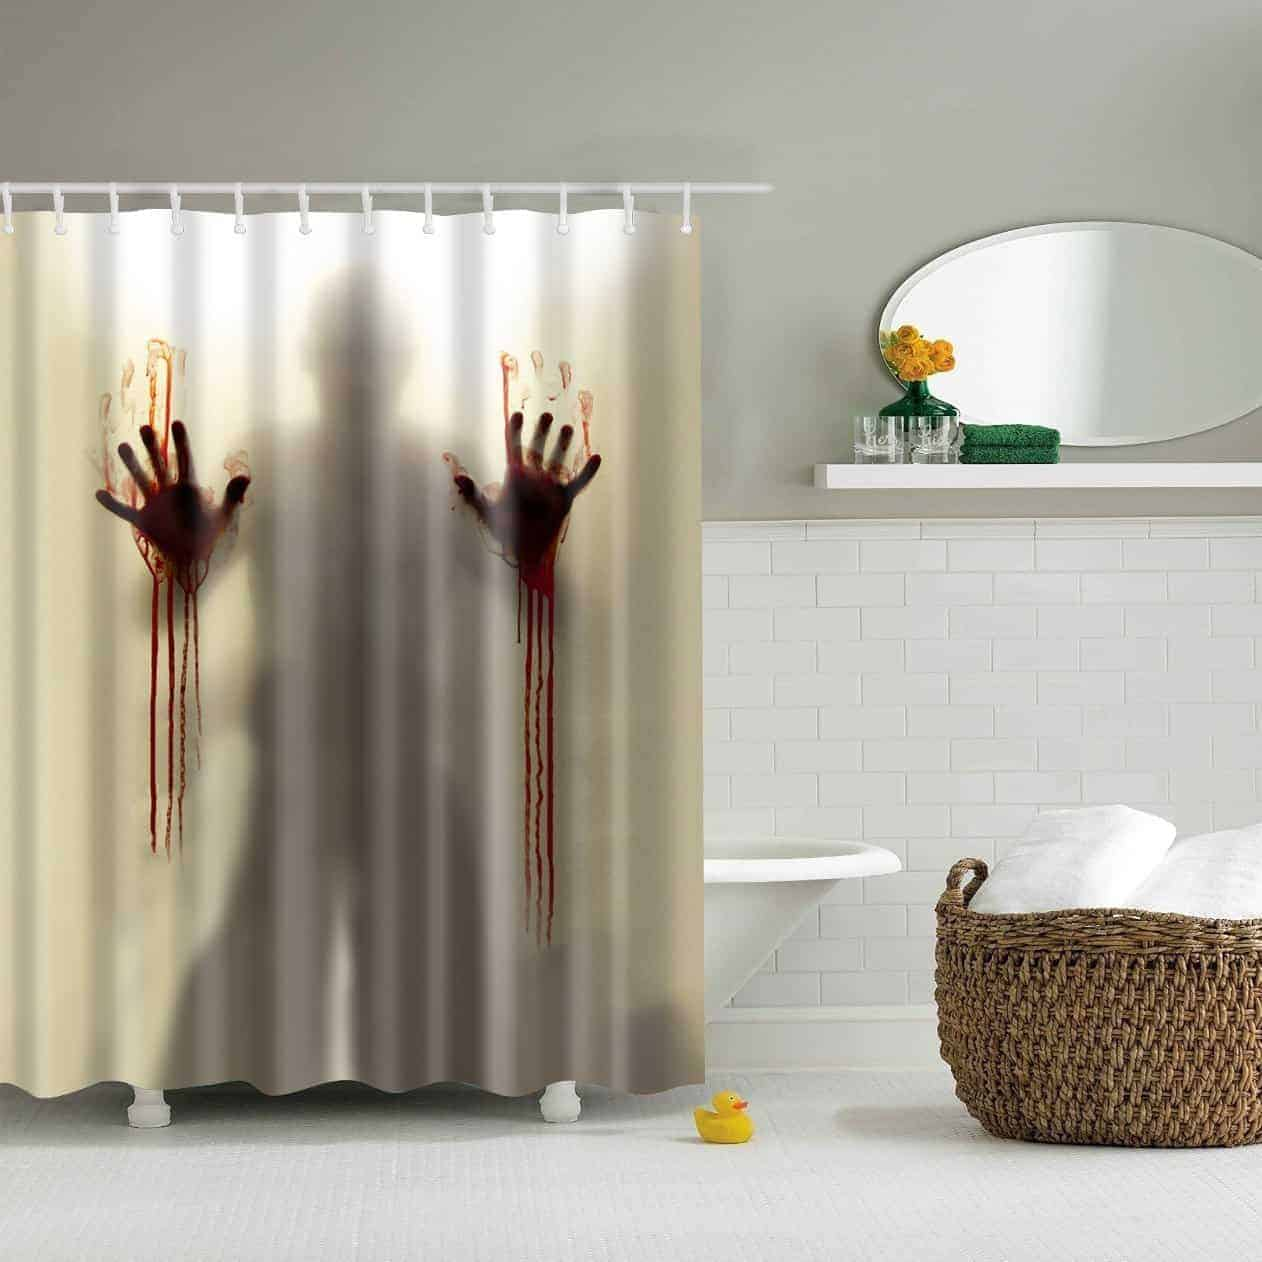 82 Shower Curtain 25 Cool Shower Curtains For Your Bathroom Makeover